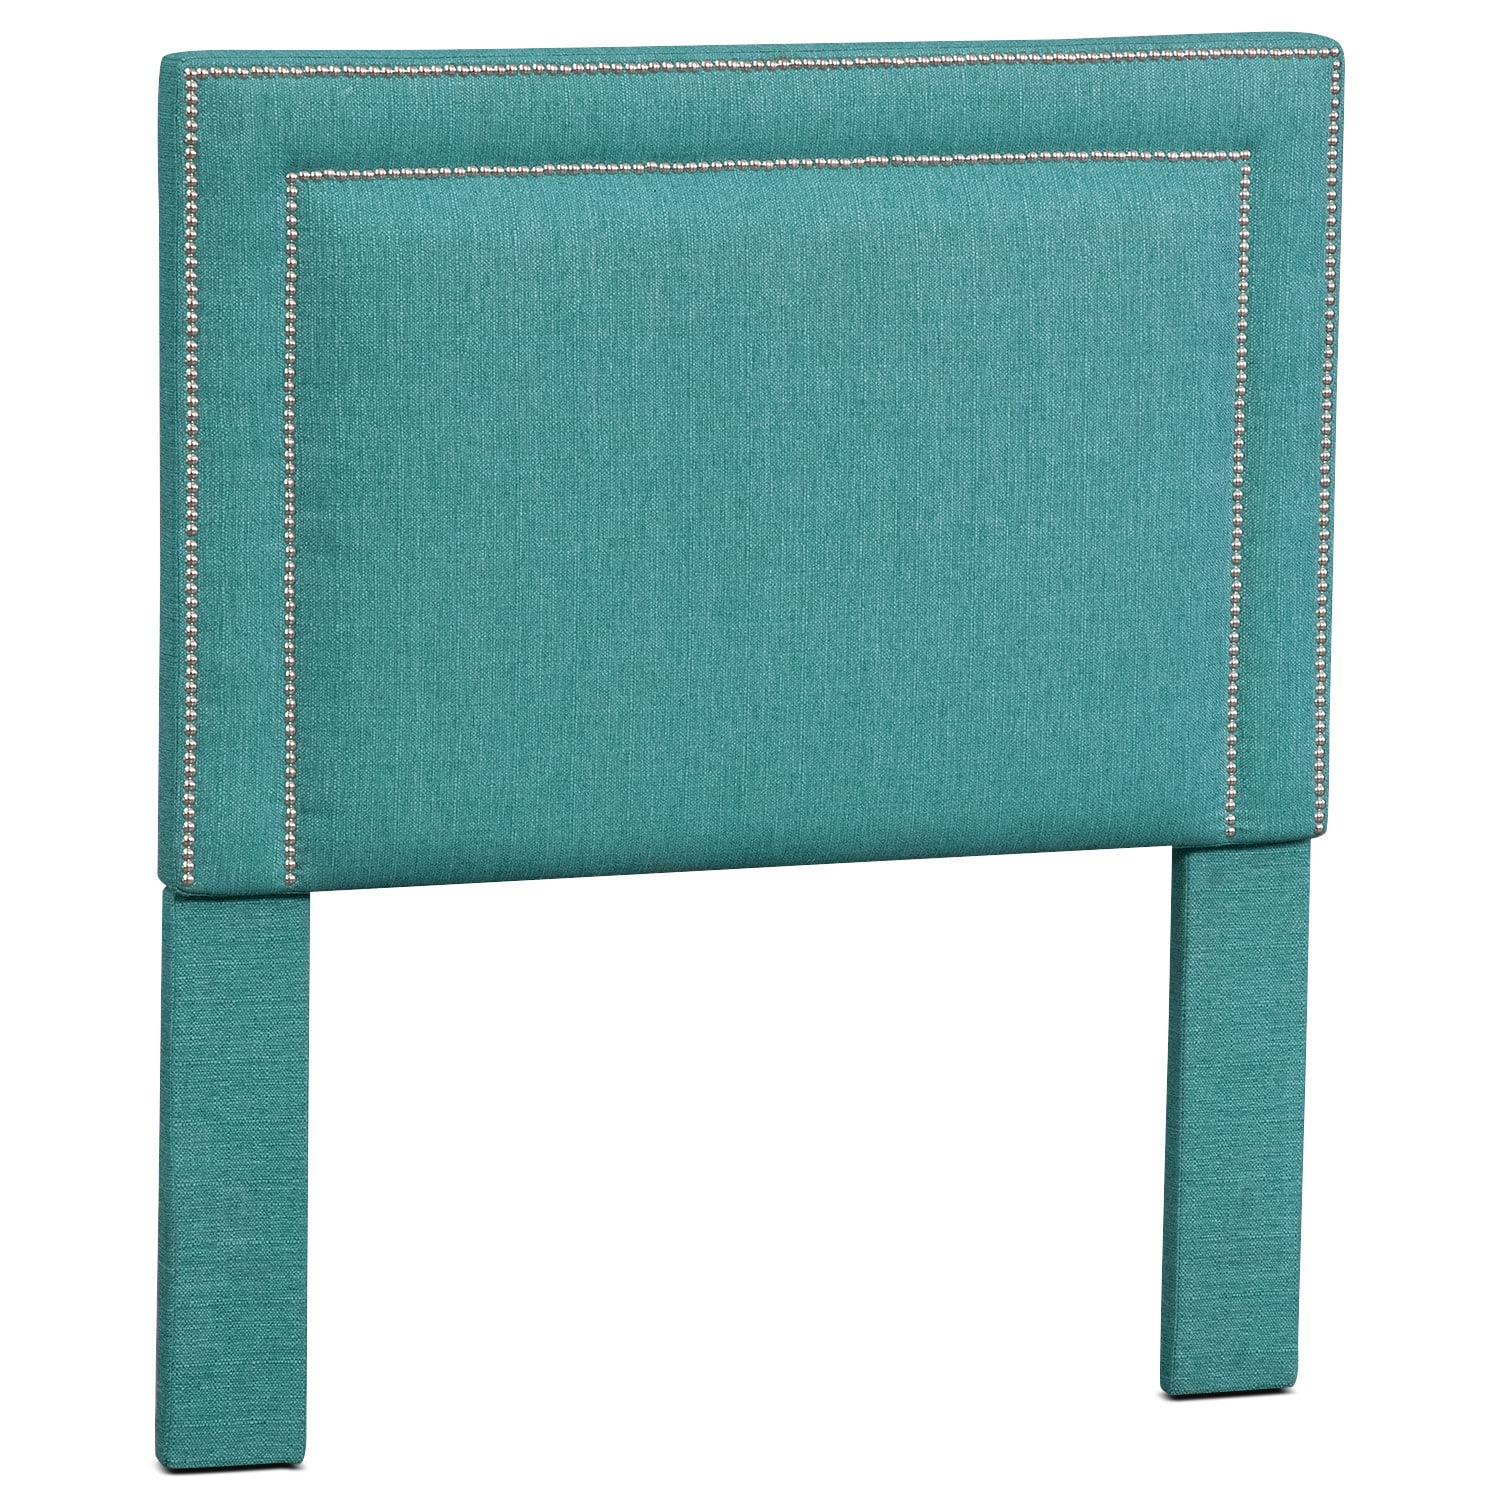 Natalie Twin Upholstered Headboard - Teal